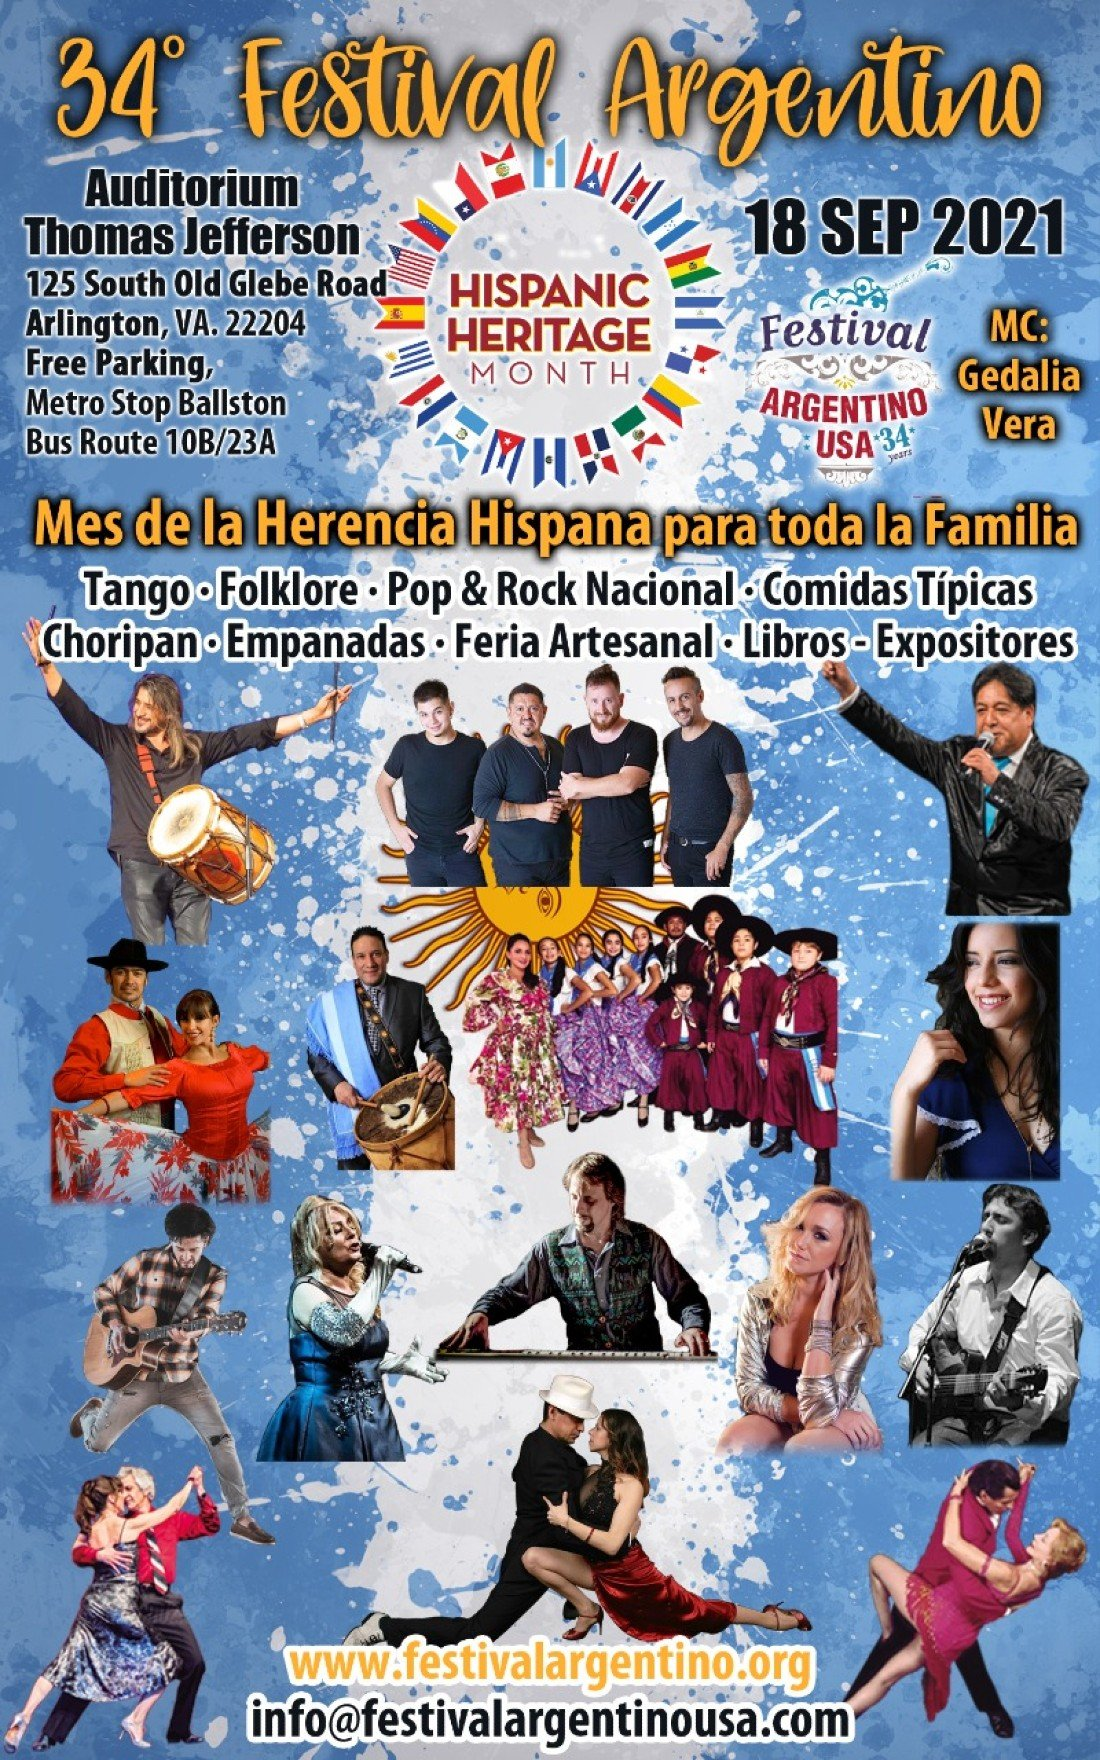 Festival Argentino USA, 18 September | Event in Arlington | AllEvents.in